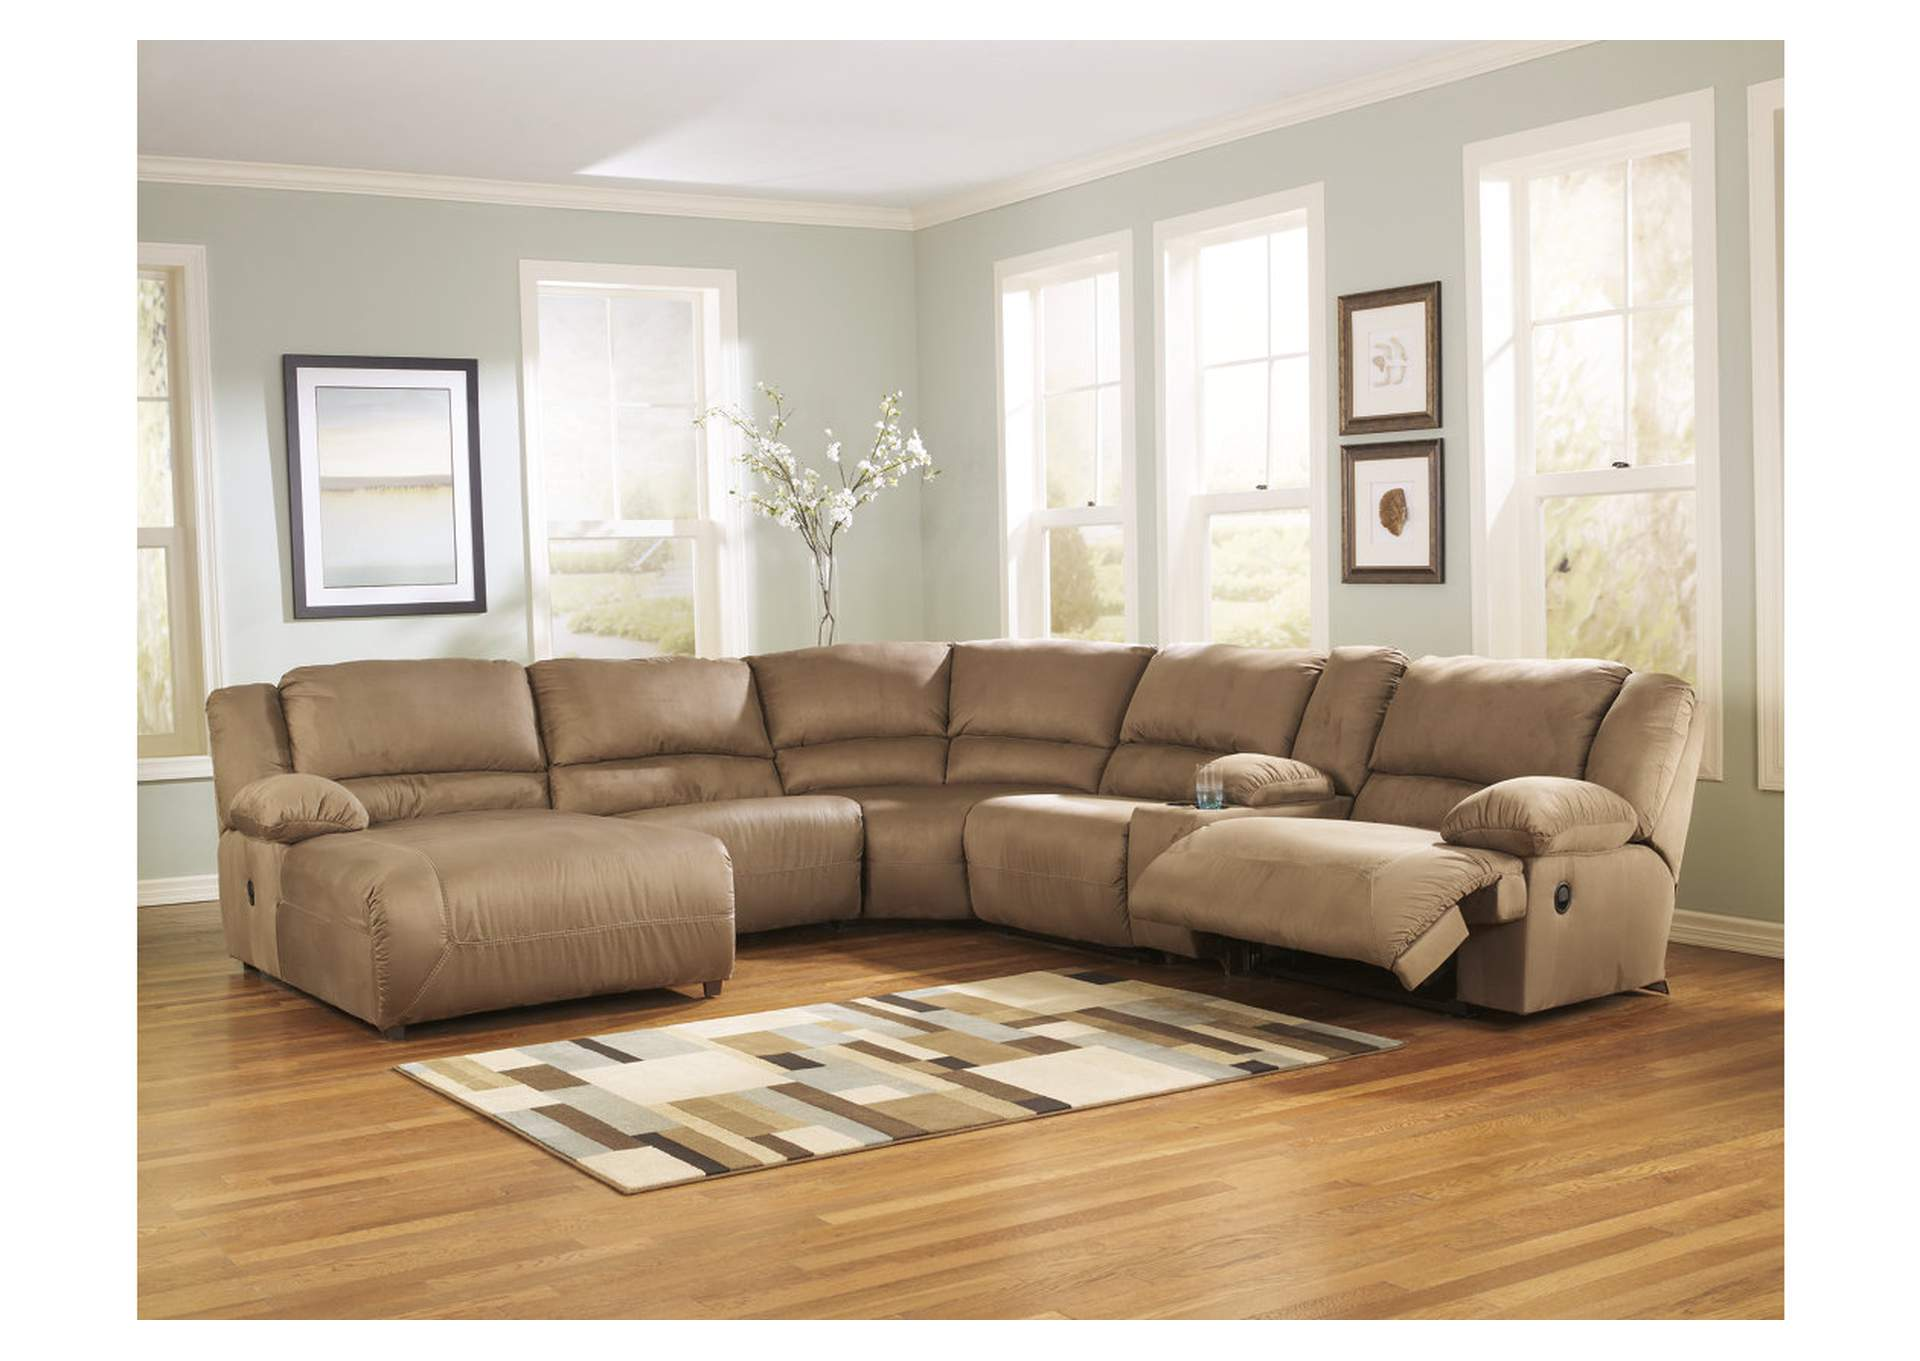 Hogan Mocha Left Facing Chaise Sectional,Signature Design by Ashley